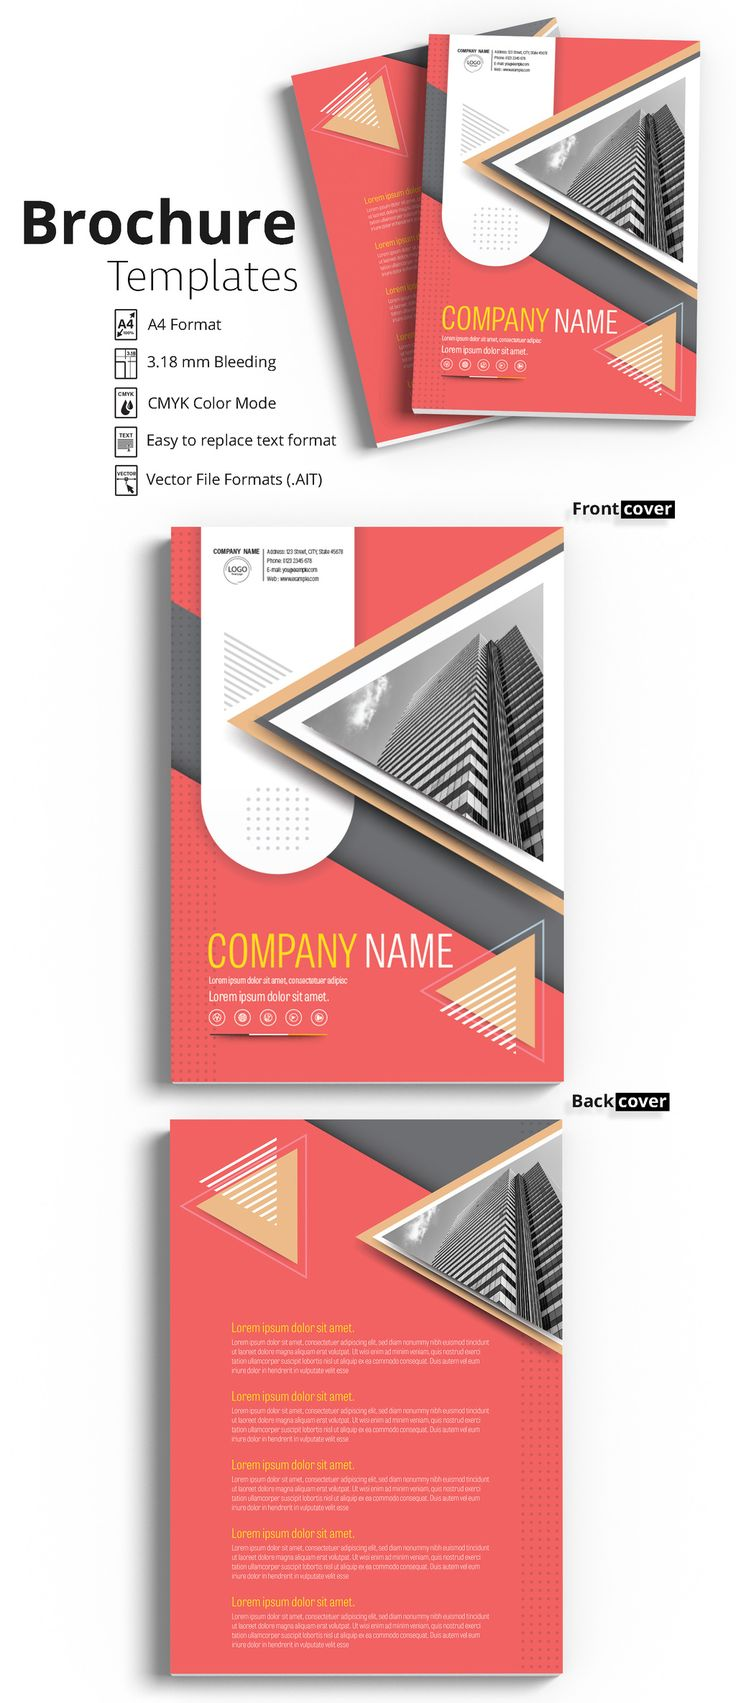 Brochure Cover Layout with Yellow and Dark Pink Accents 1 - image | Adobe Stock #Brochure #Business #Proposal #Booklet #Flyer #Template #Design #Layout #Cover #Book #Booklet #A4 #Annual #Report| Brochure template | Brochure design template | Flyers | Template | Brochures | Flyer Background | Background design | Business Proposal | Proposal Design | Booklet | Professional | Professional - Proposal - Brochure - Template